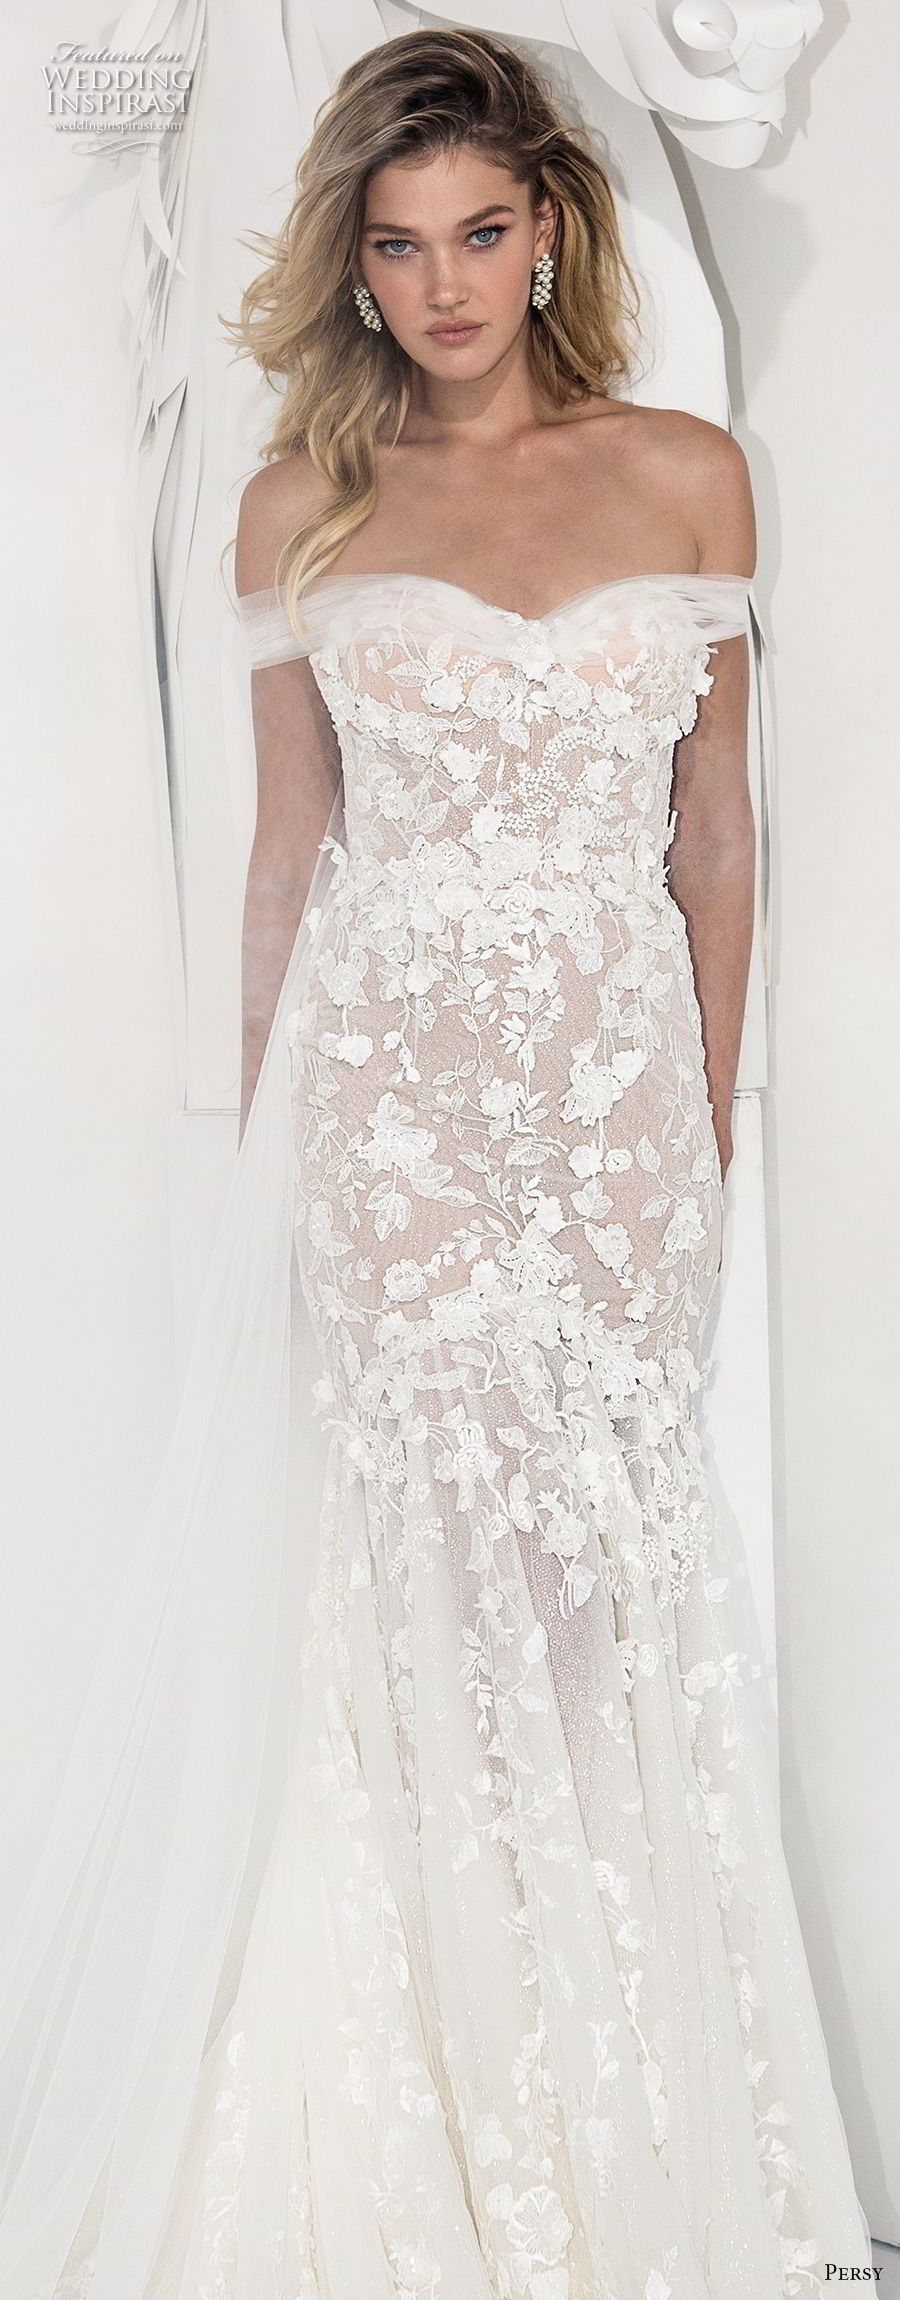 Preloved pronovias wedding dresses  persy couture  bridal off the shoulder sweetheart neckline full